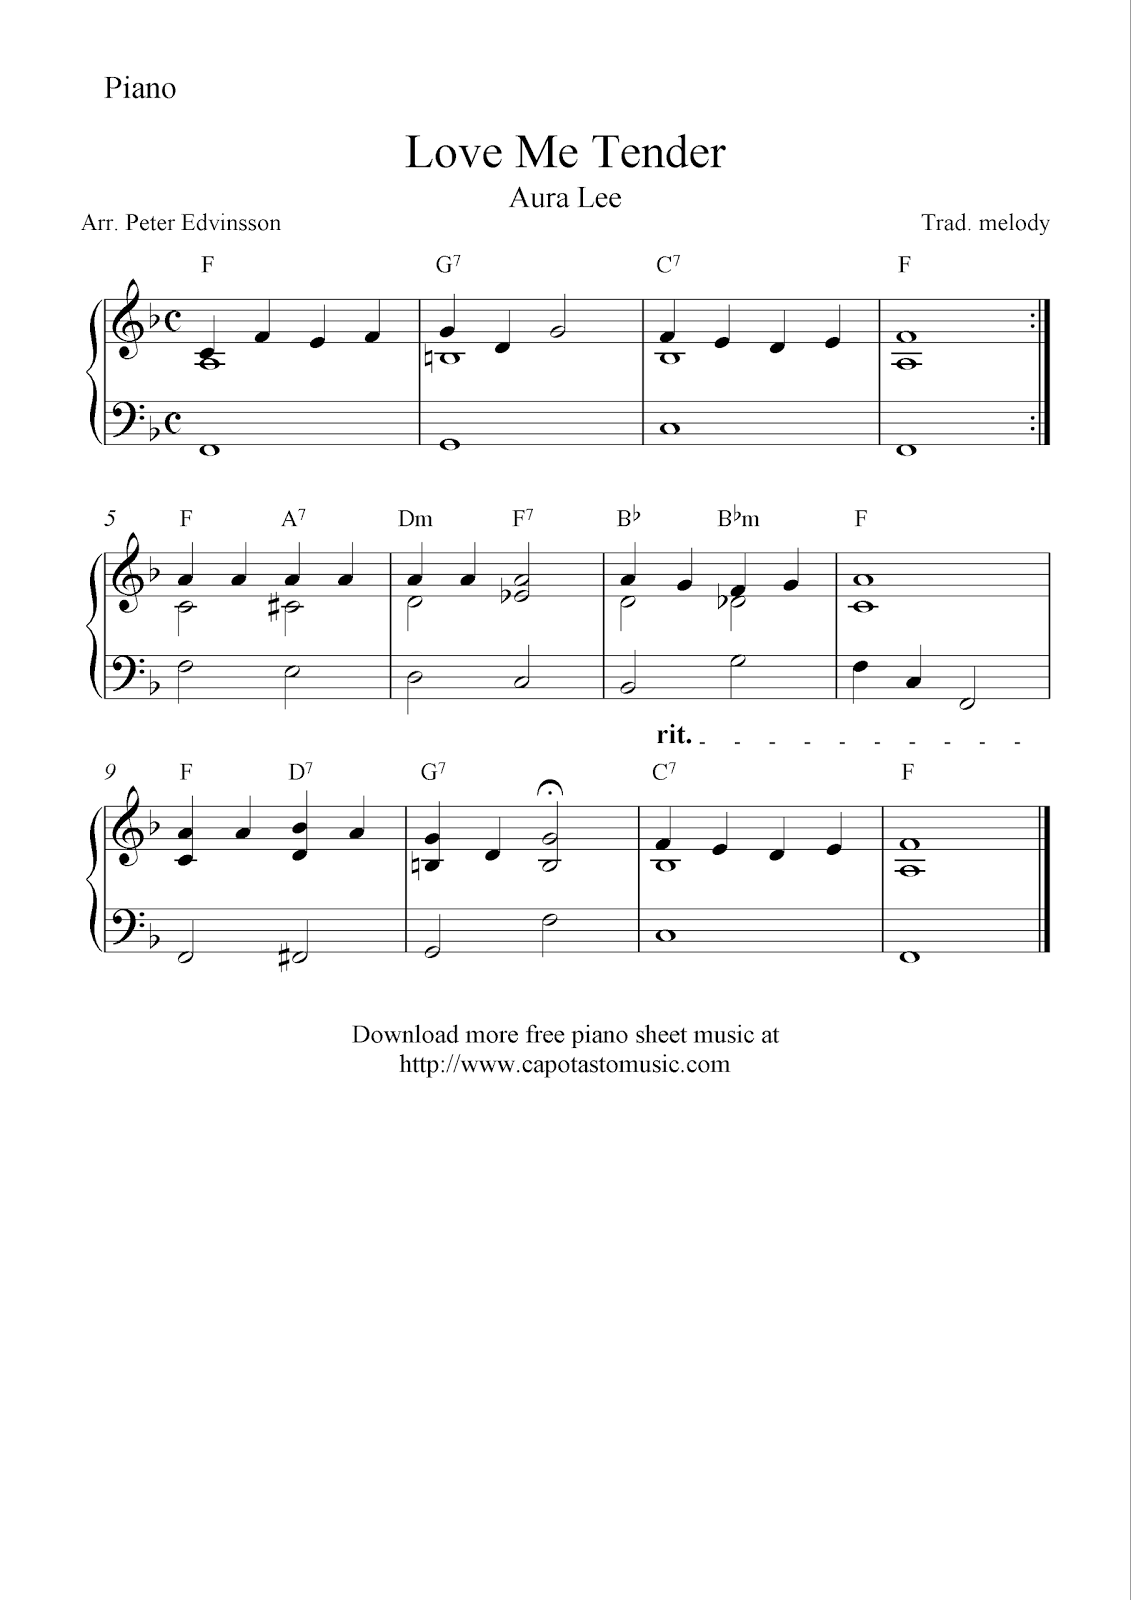 Free Easy Piano Sheet Music Solo Arrangement With The Melody Love Me Tender Aura Lee Free Printable She Piano Sheet Music Sheet Music Easy Piano Sheet Music